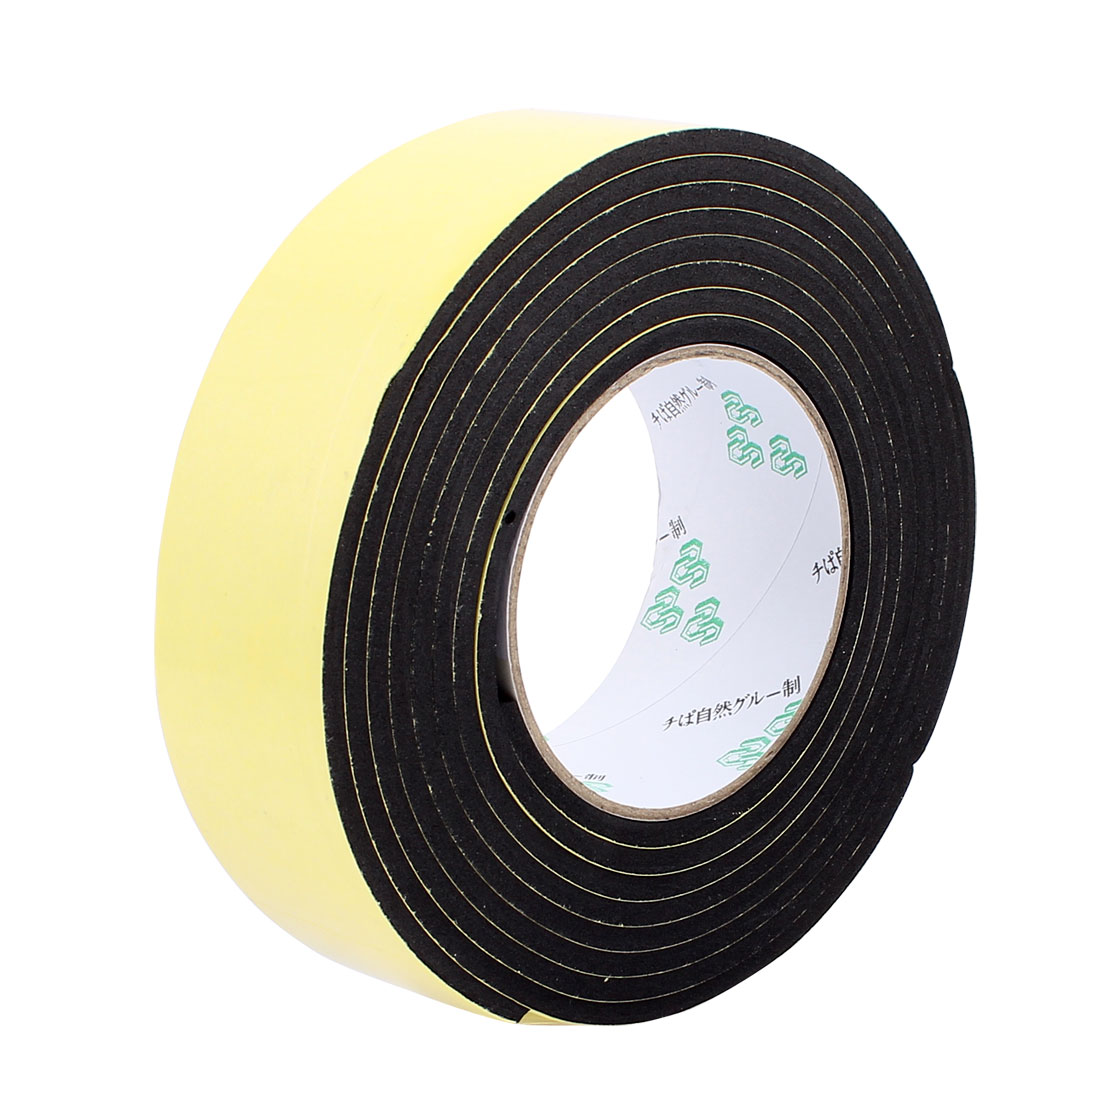 4.5CM Width 3 Meters Length 4MM Thick Single Sided Sealing Shockproof Sponge Tape